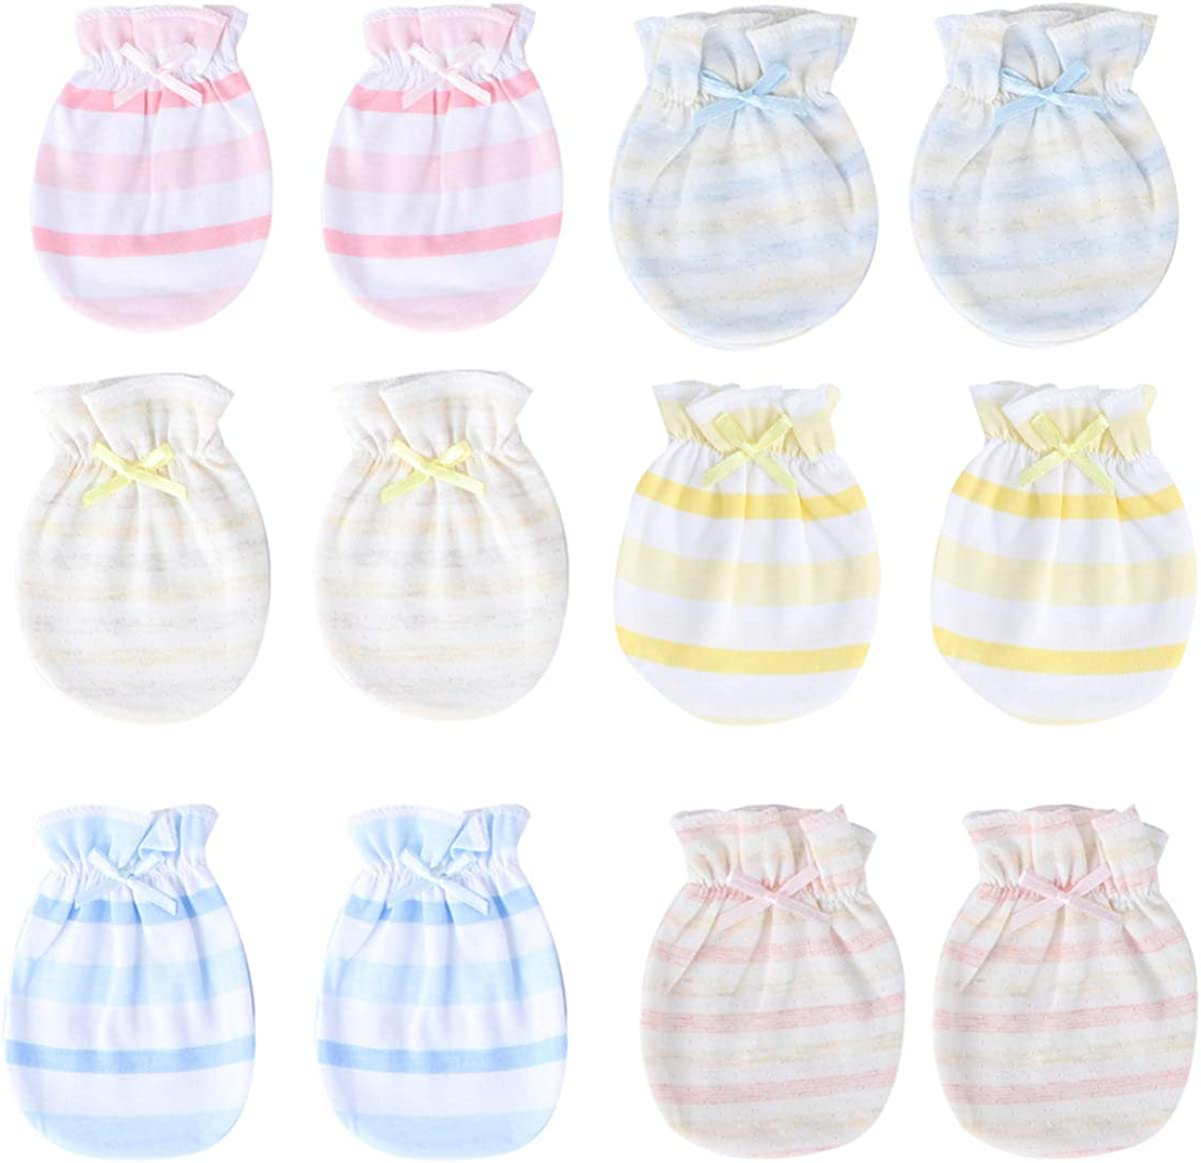 KESYOO 6 Pair Baby Mittens Cotton Anti-scratch Gloves No Scratch Mittens for Newborn Infant Baby Toddlers